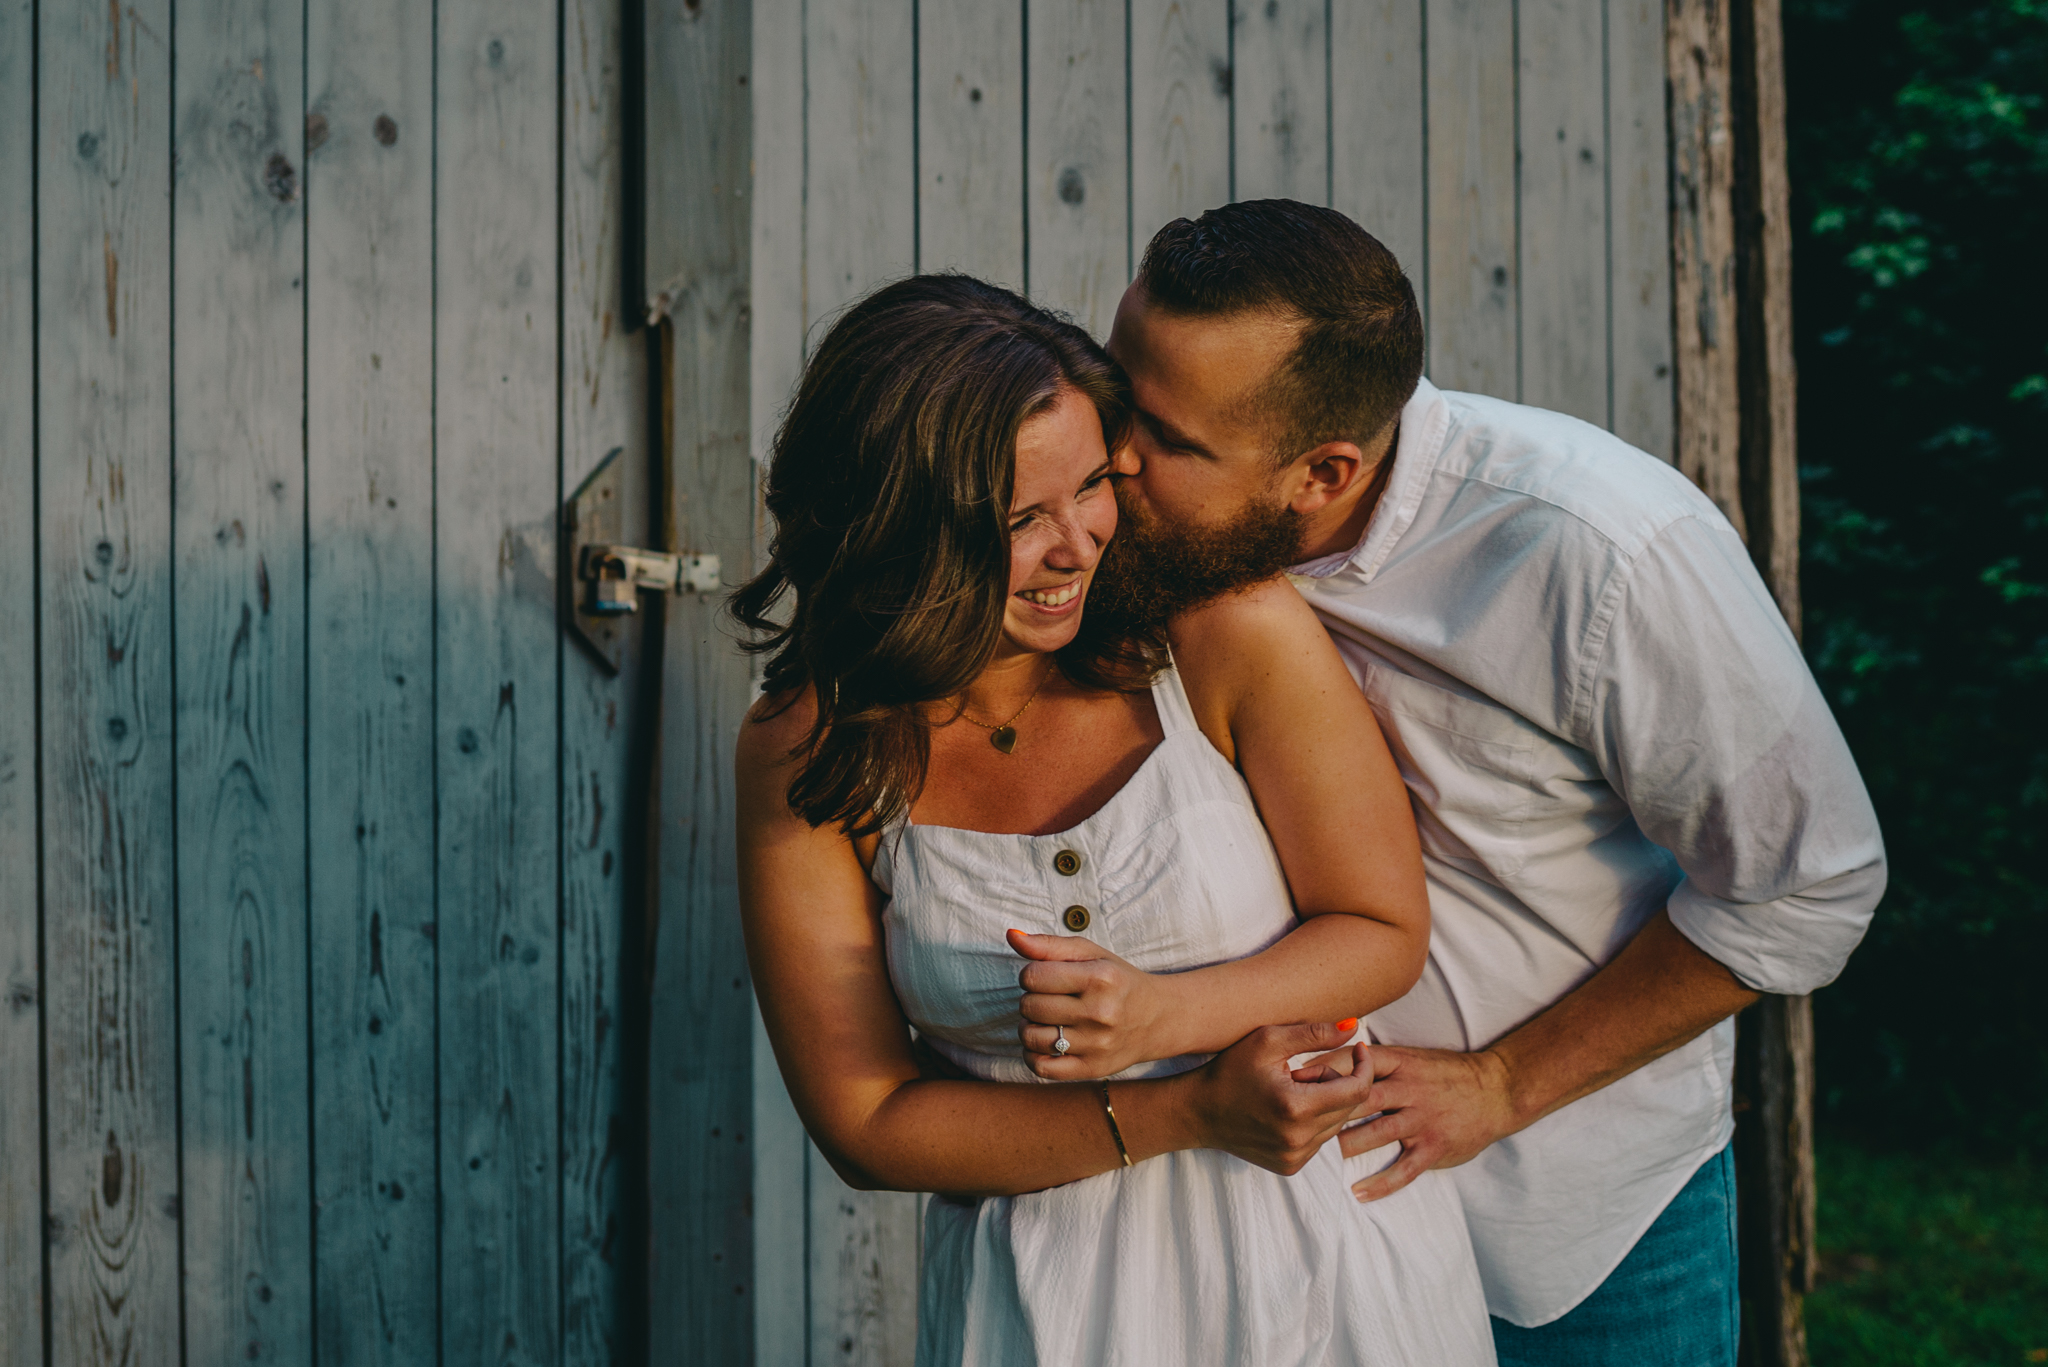 The couple laugh together by the barn at sunset during their engagement pictures with Rose Trail Images at Horseshoe Park in Wake Forest, North Carolina.